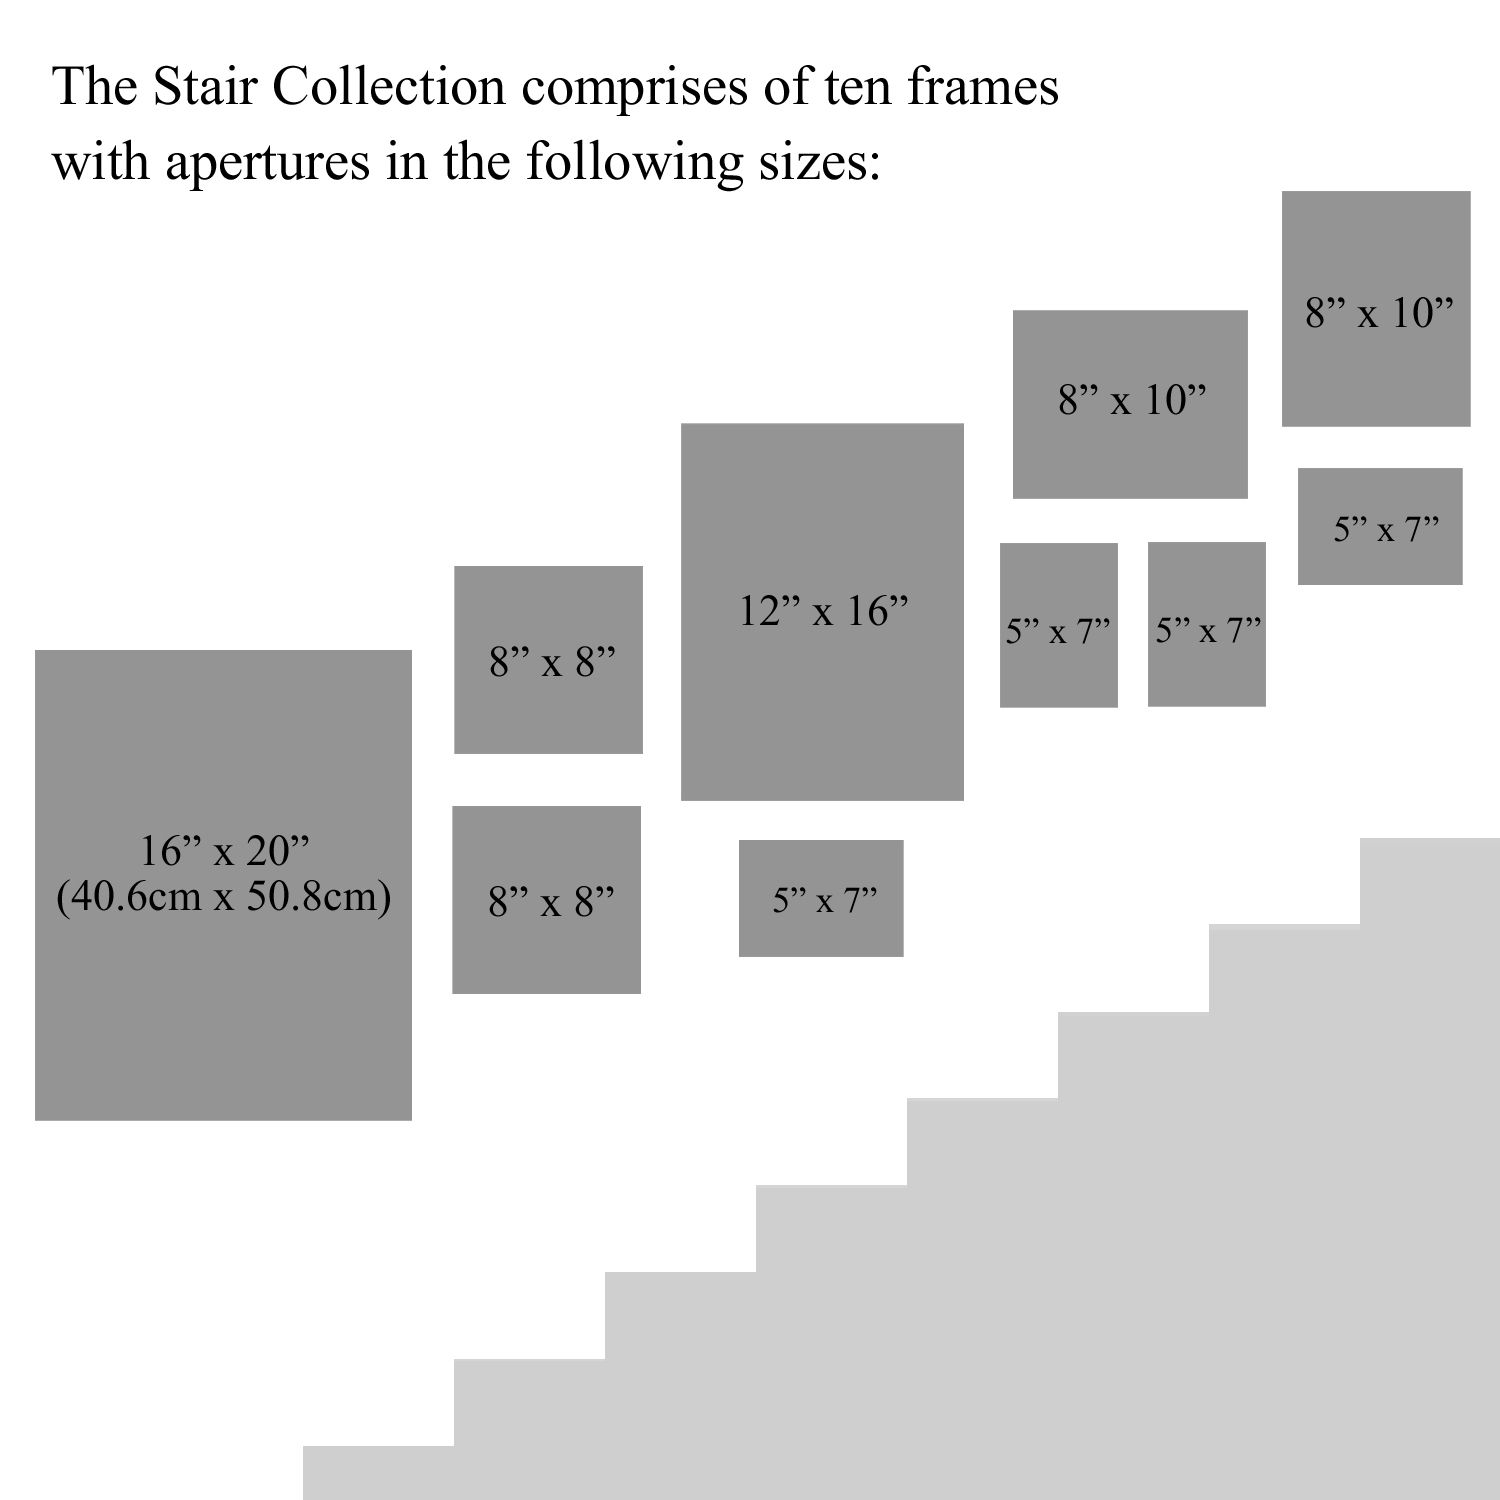 Gallery Frame Stair Collection Stair Wall Decor Gallery Wall Staircase Staircase Wall Decor